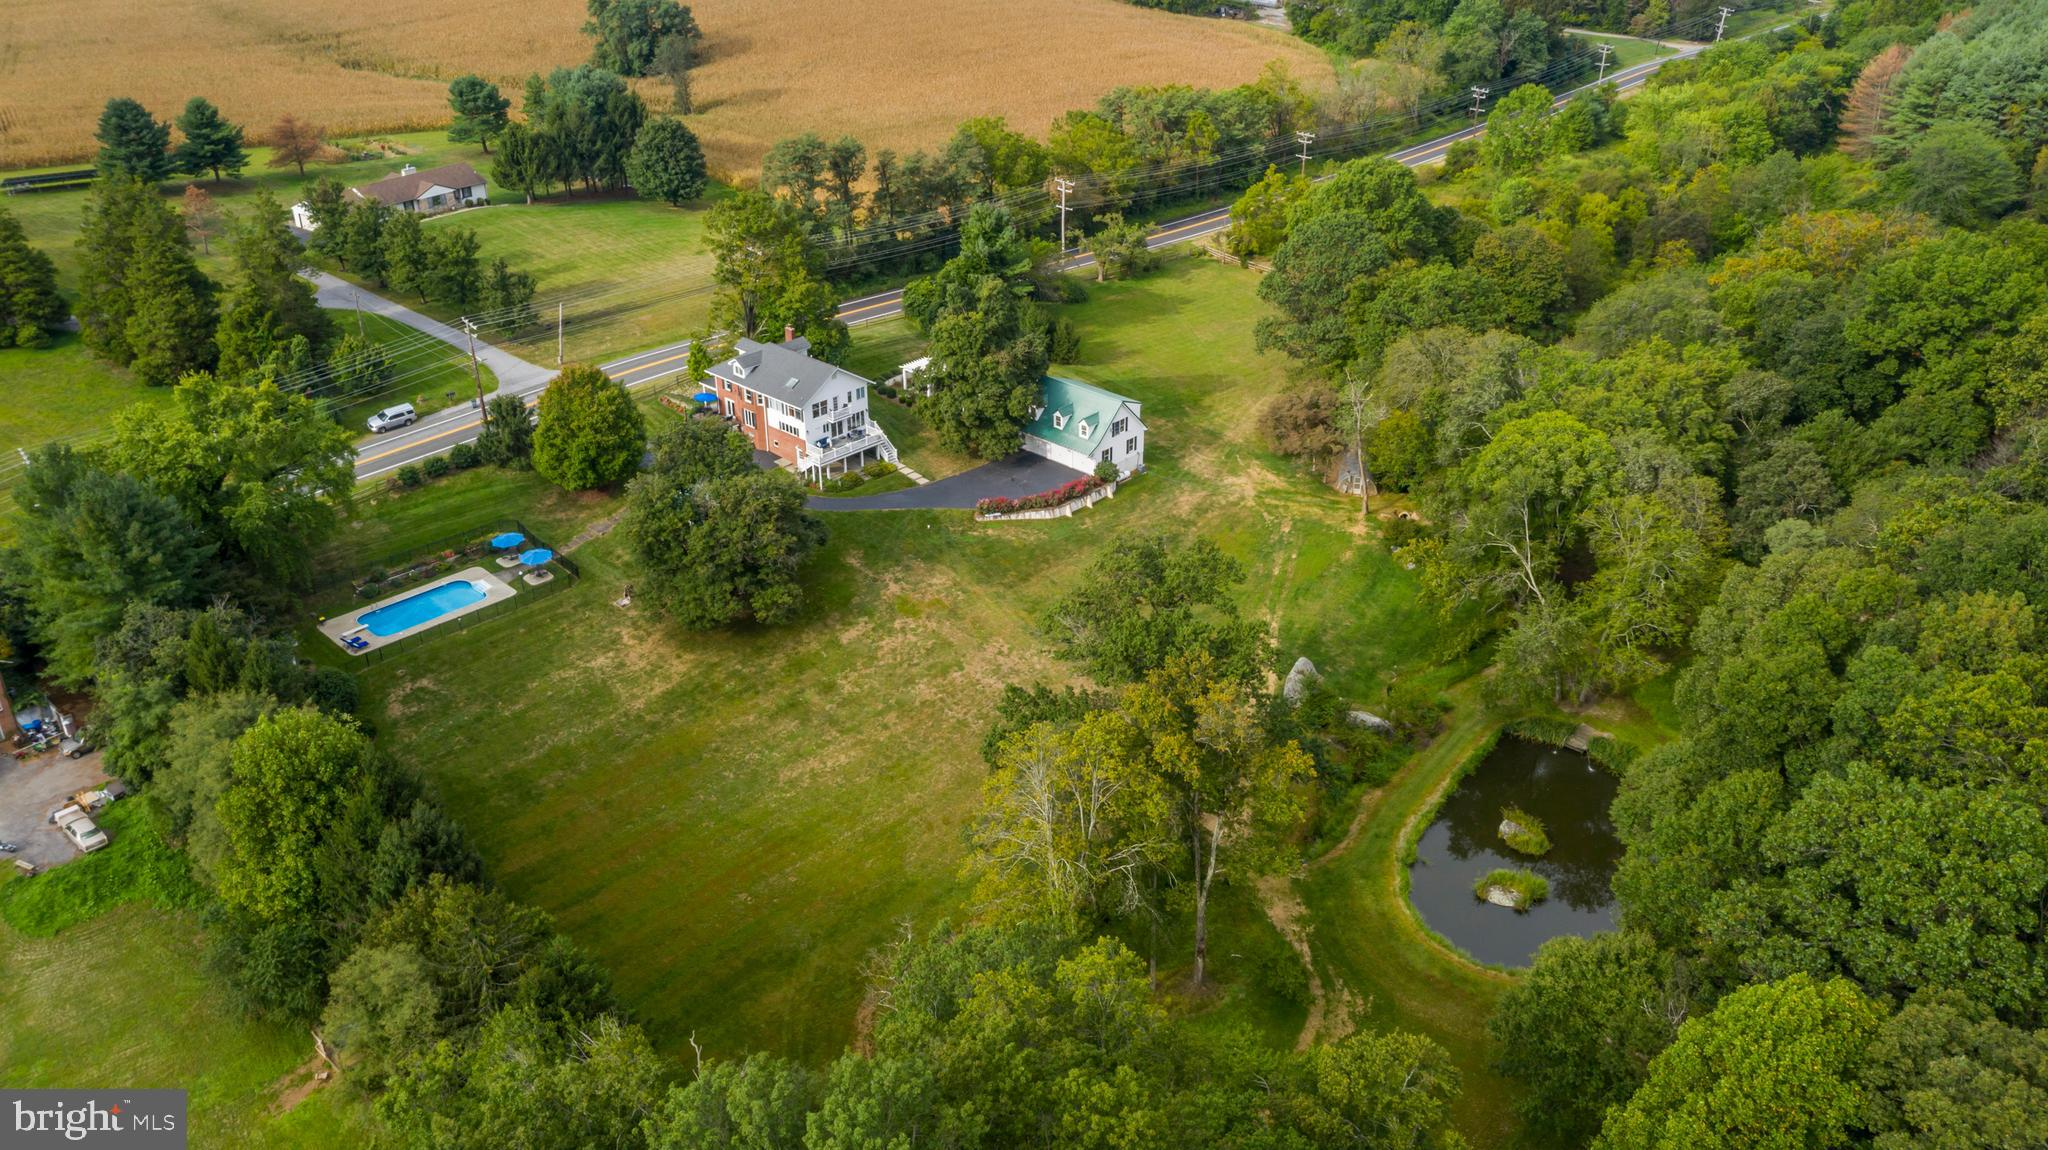 13600 FREDERICK ROAD, WEST FRIENDSHIP, MD 21794